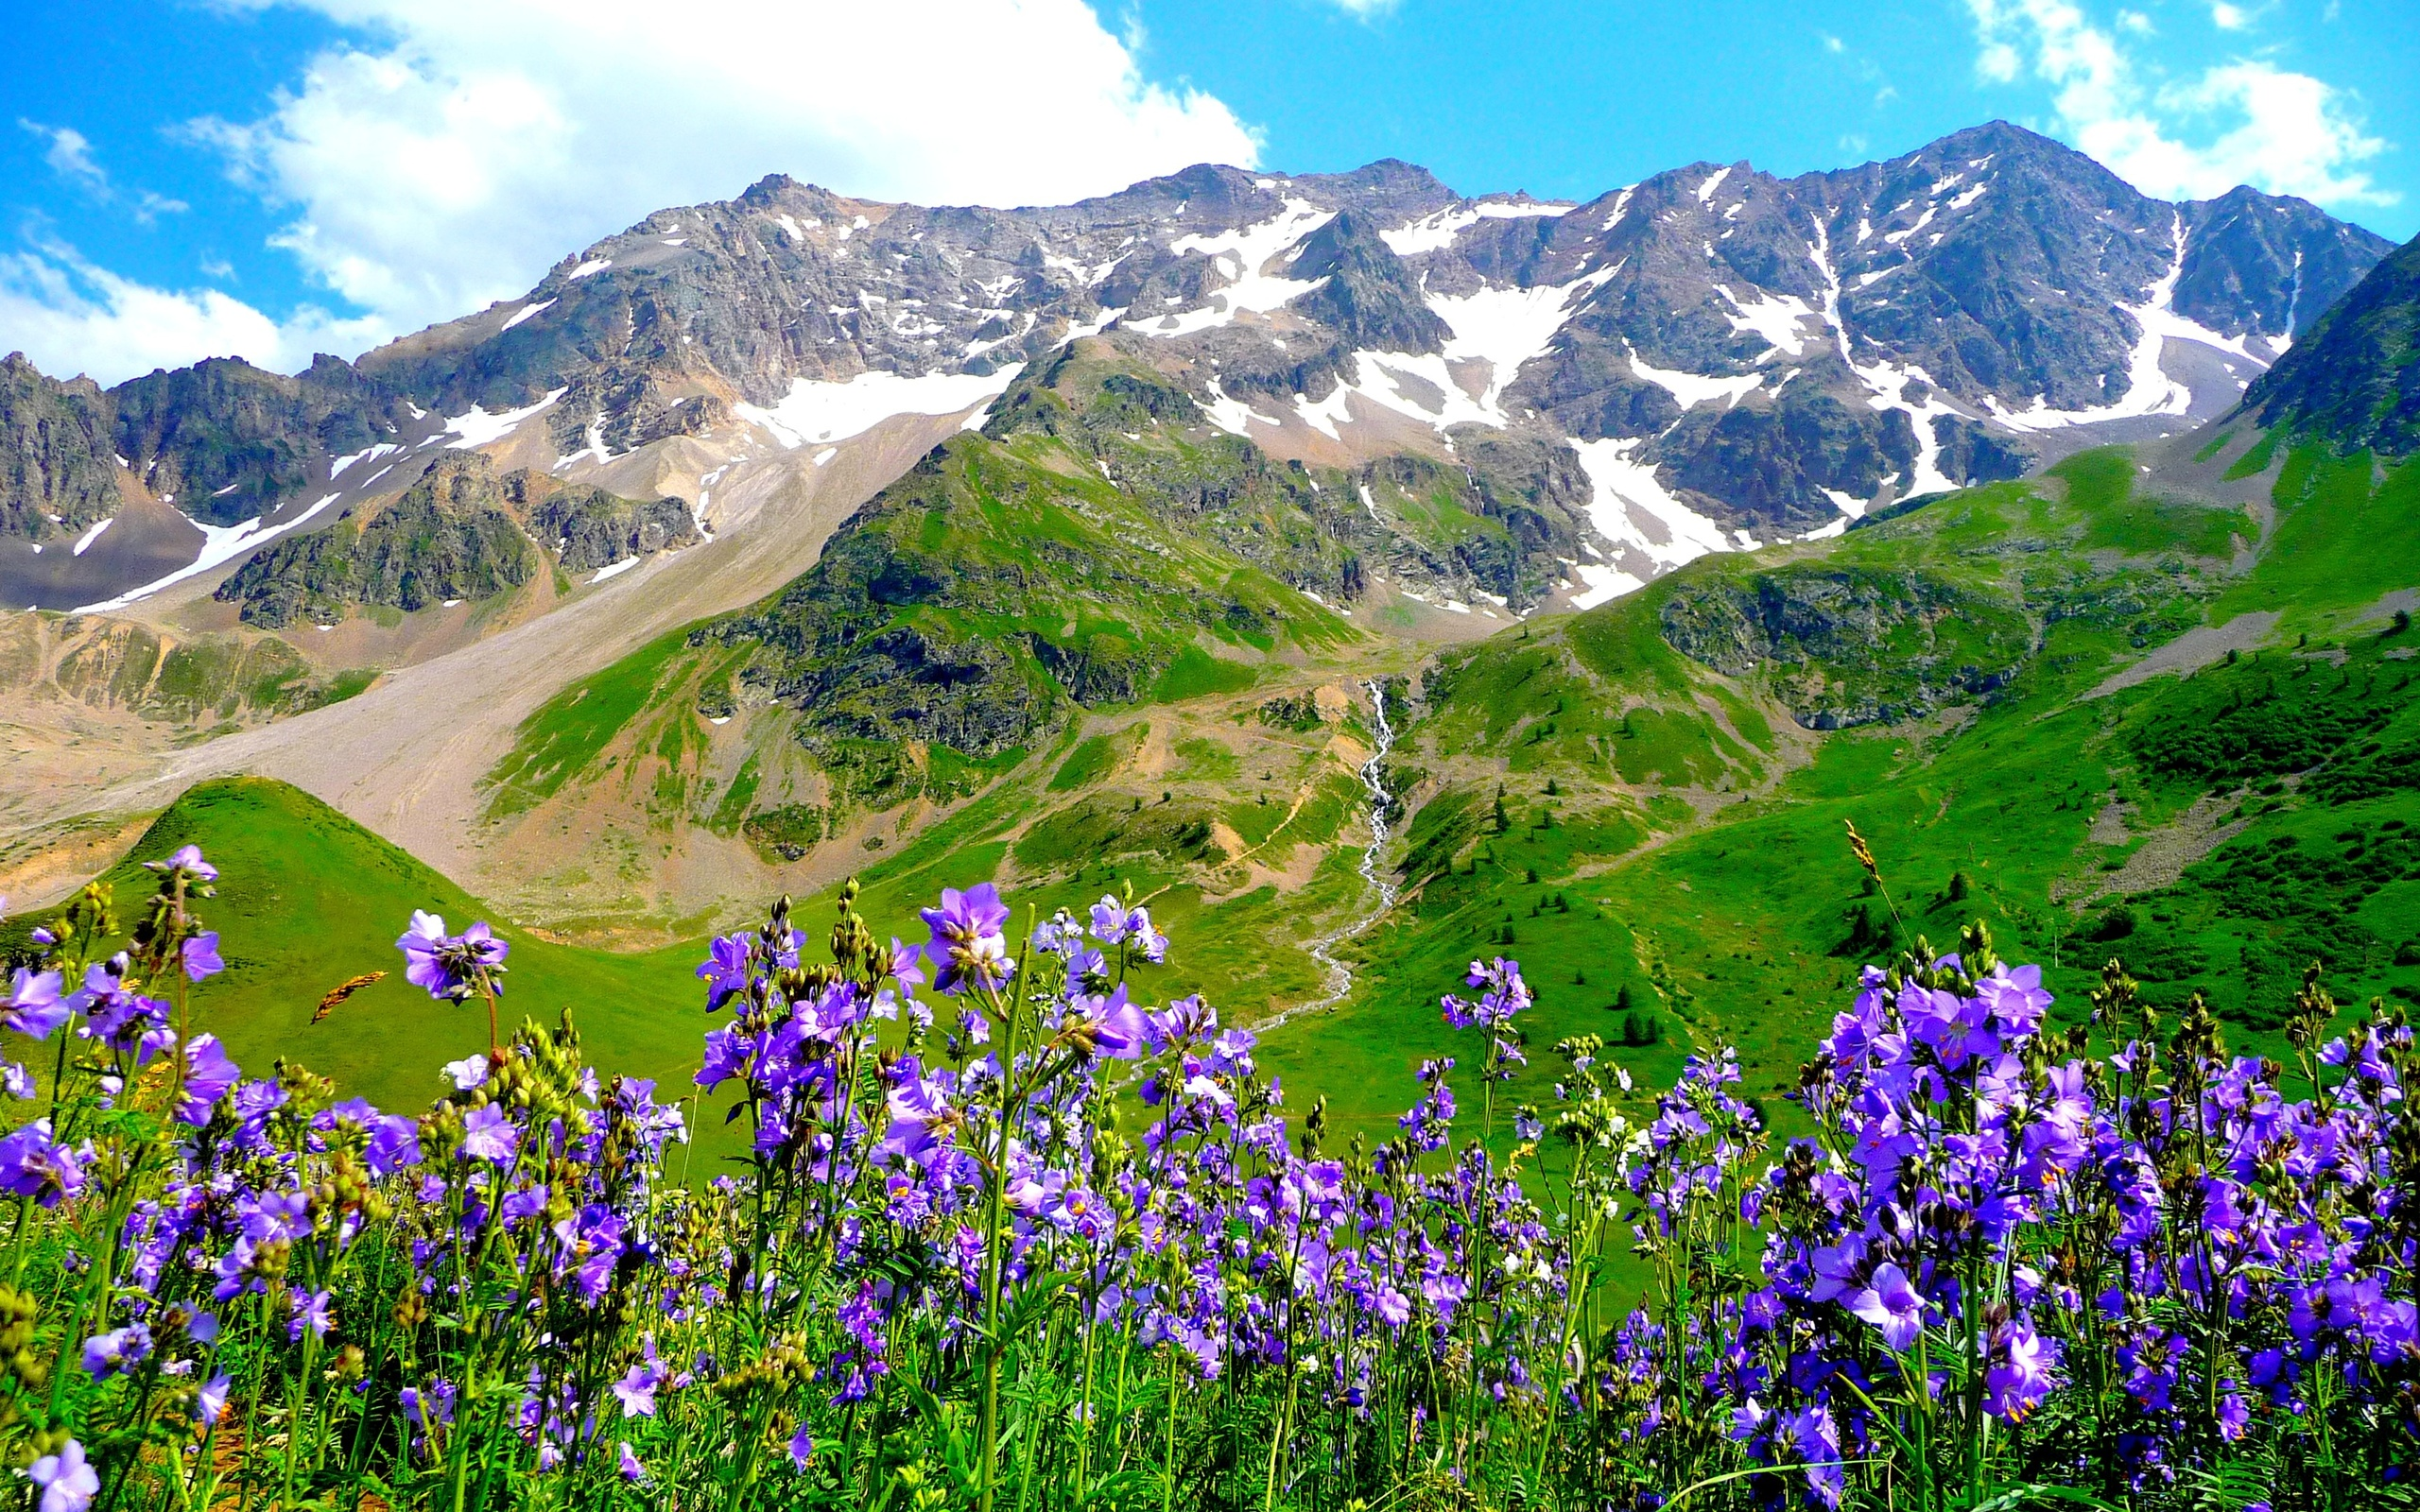 Mountains alps flowers landscape wallpaper 2560x1600 for Flower landscape